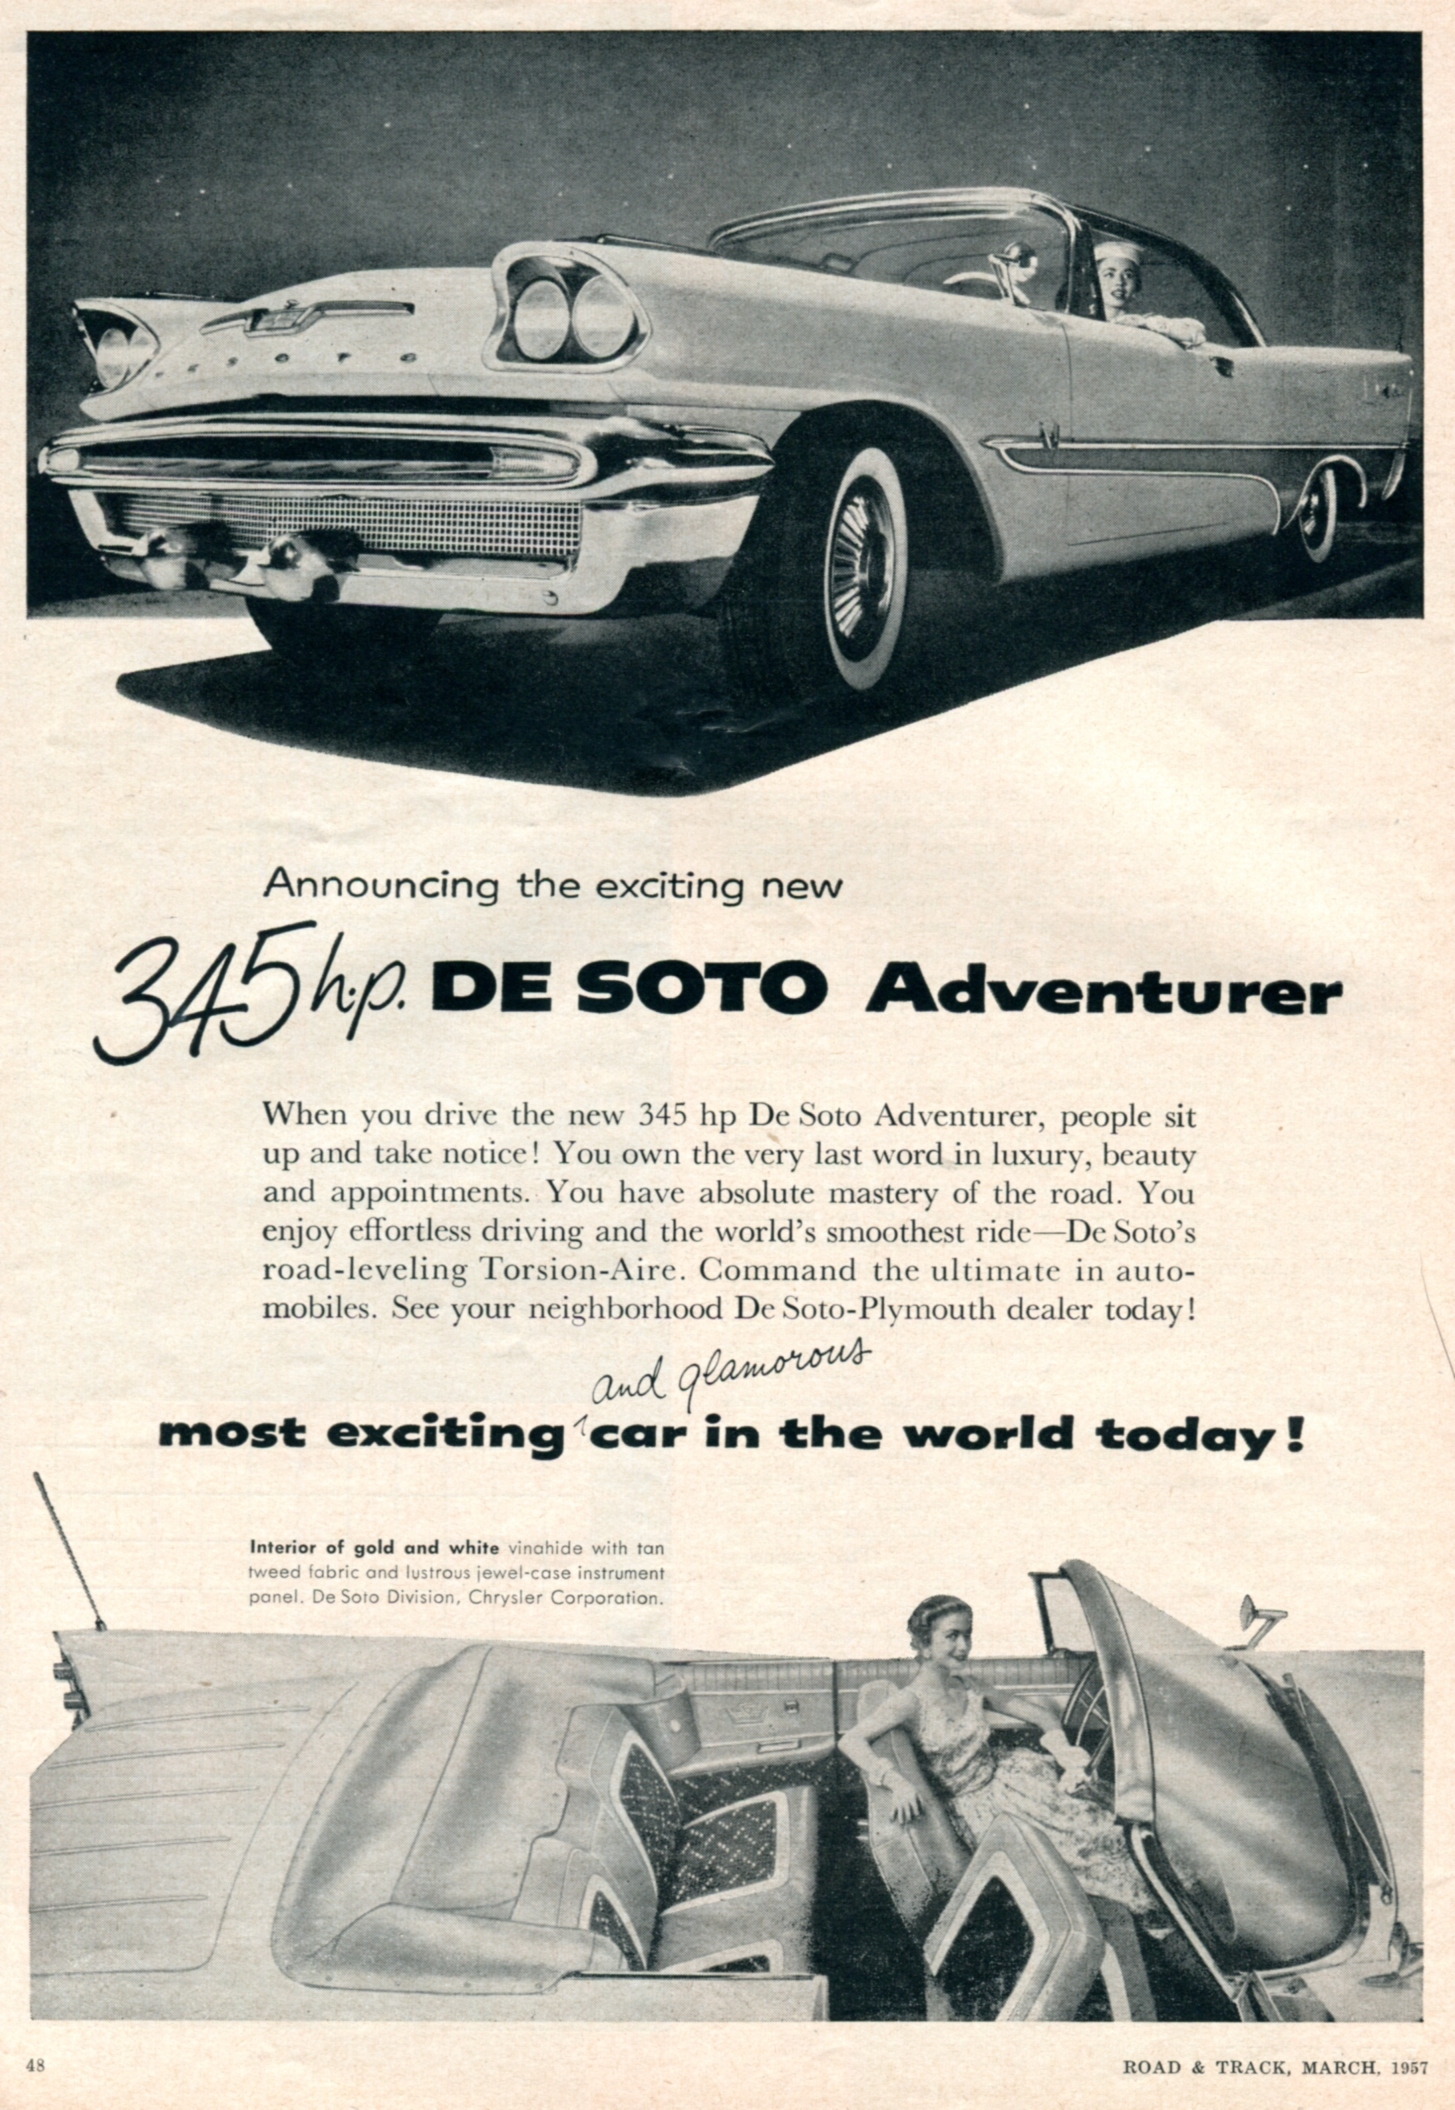 1957 De Soto Adventurer - published in Road and Track - March 1957